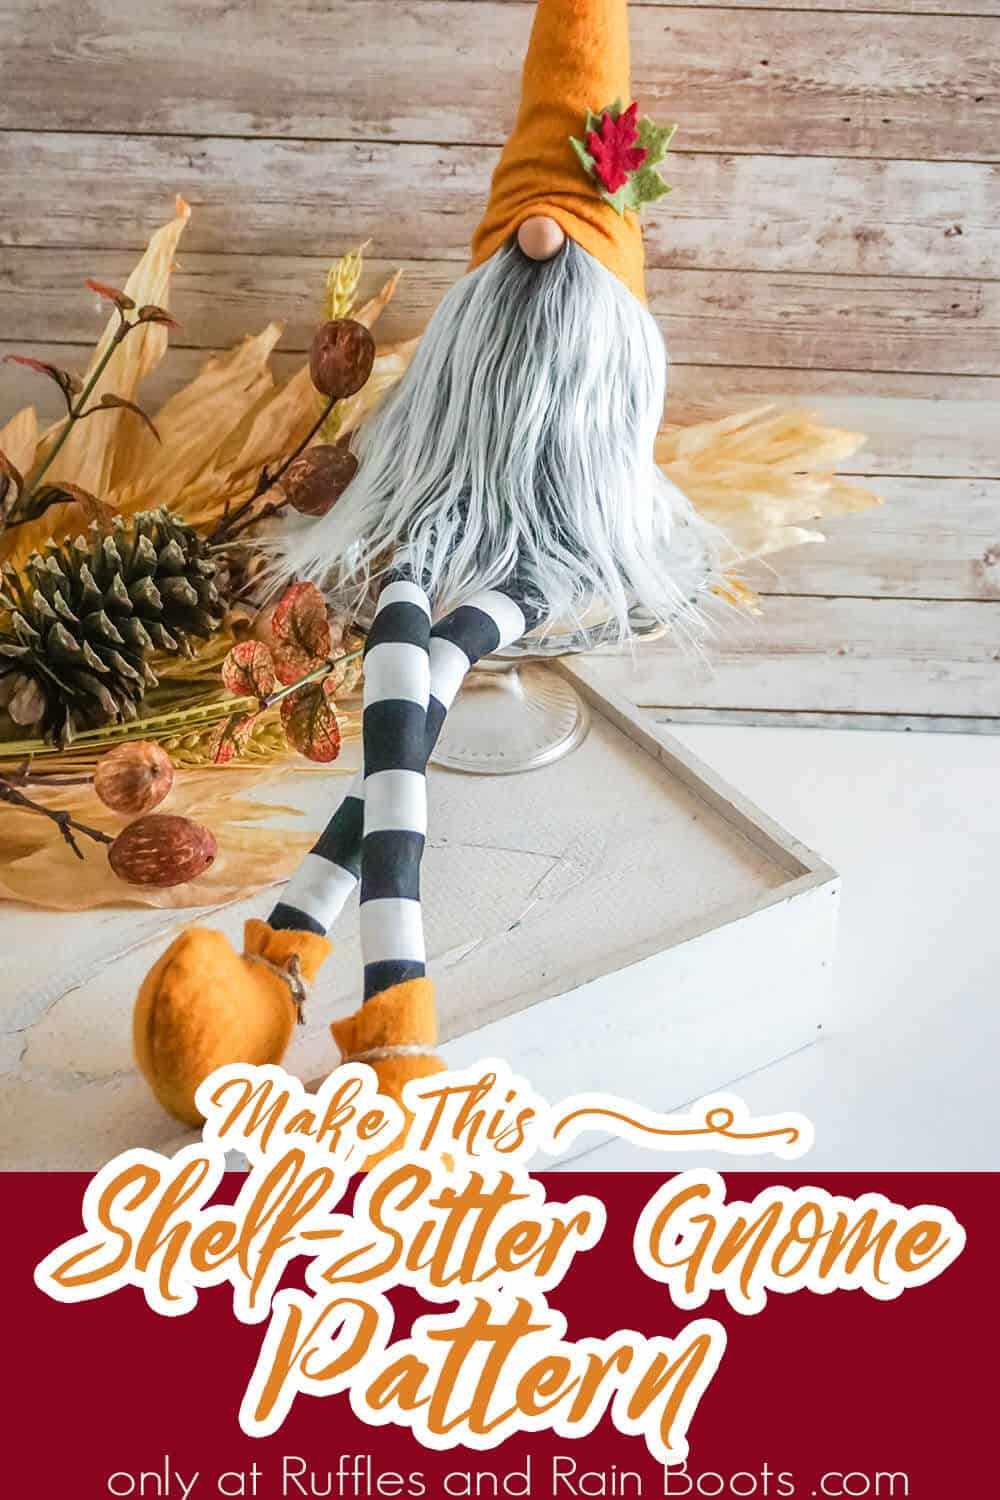 gnome pattern for fall with text which reads make this shelf sitter gnome pattern